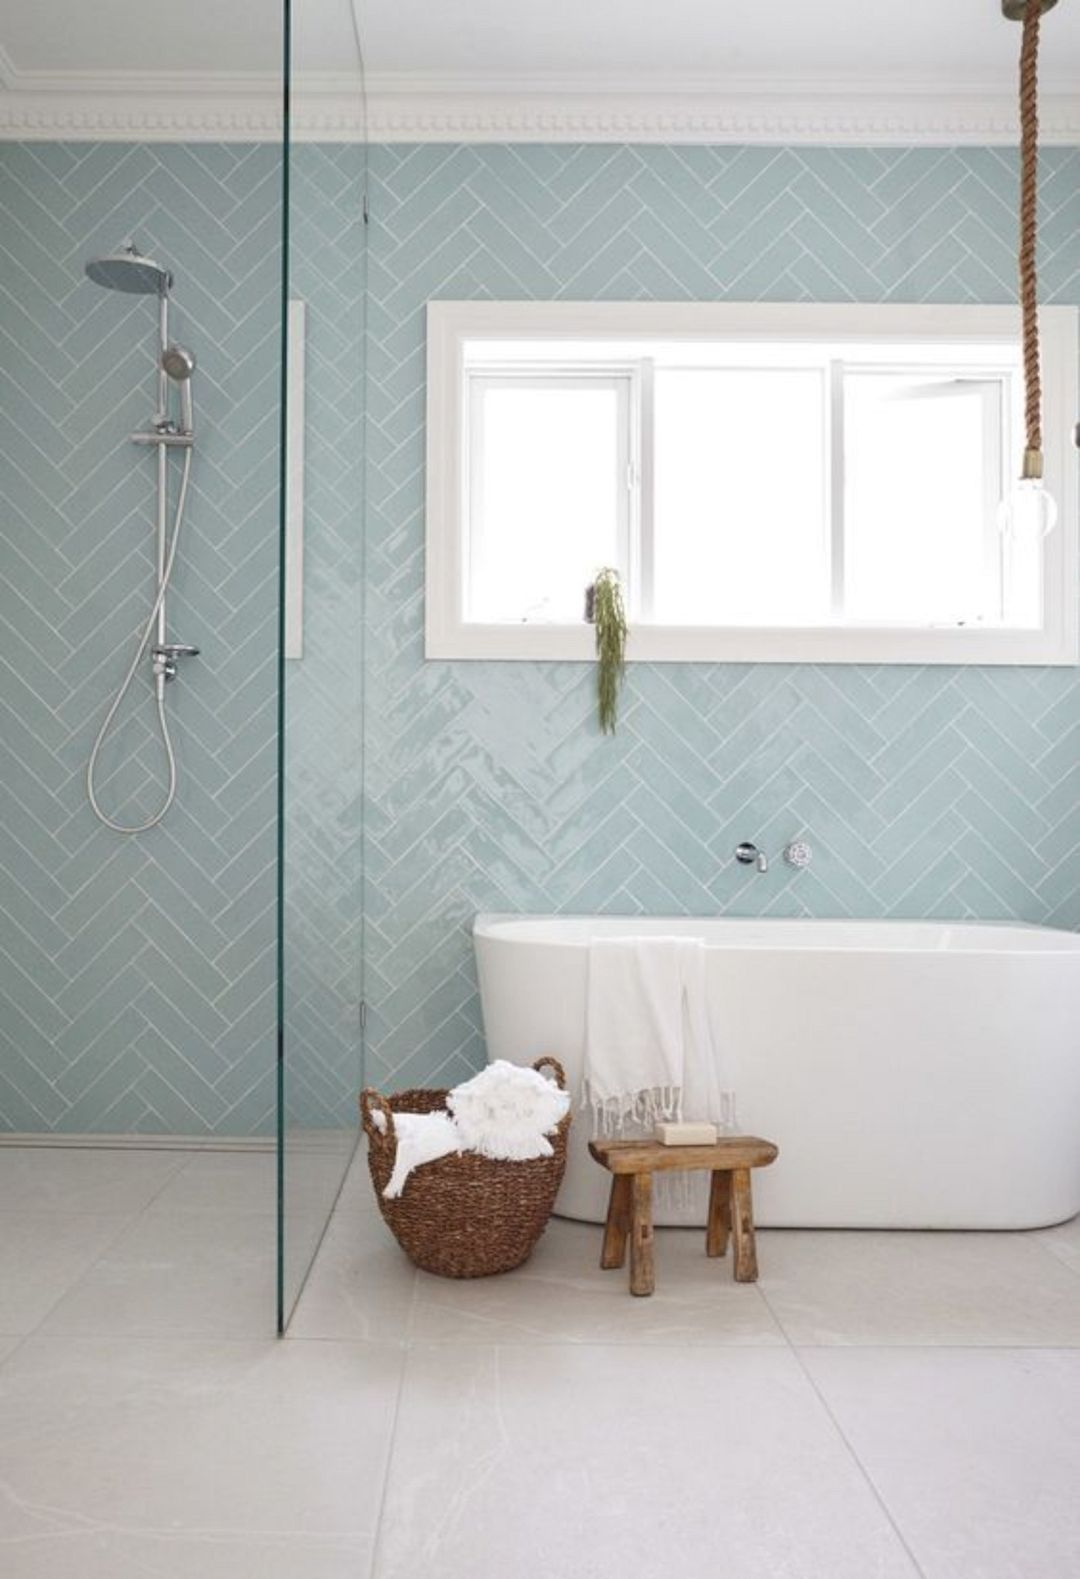 Bathroom Tiles Ideas 1 | SHOWR | Pinterest | Tile ideas, Bathroom ...